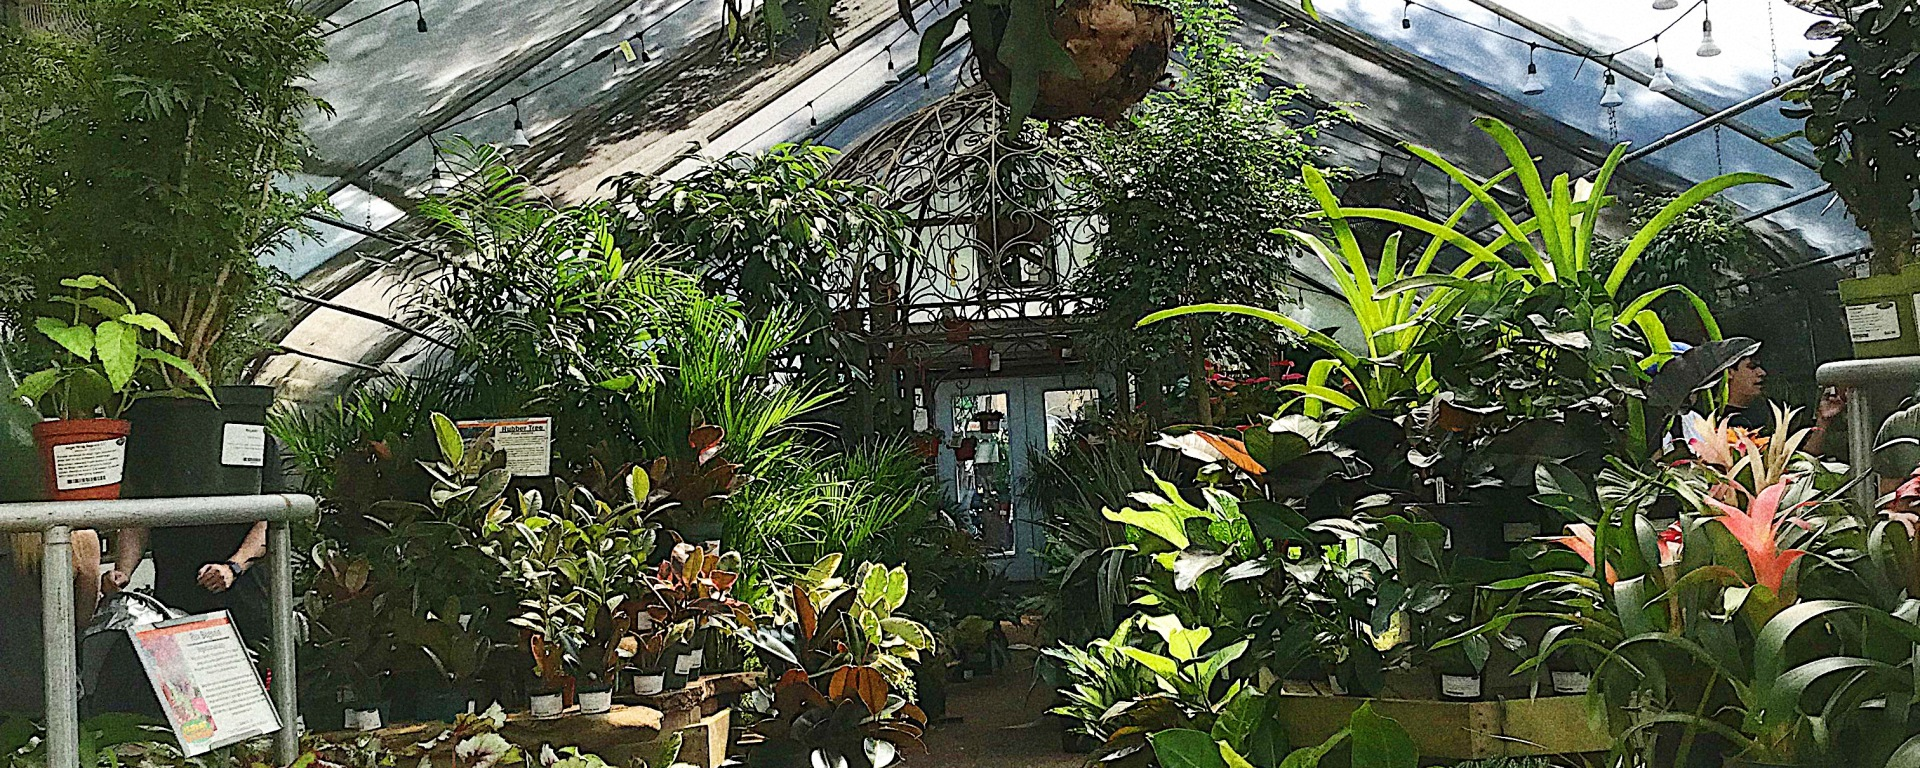 A lush greenhouse containing tons of displays of houseplants.